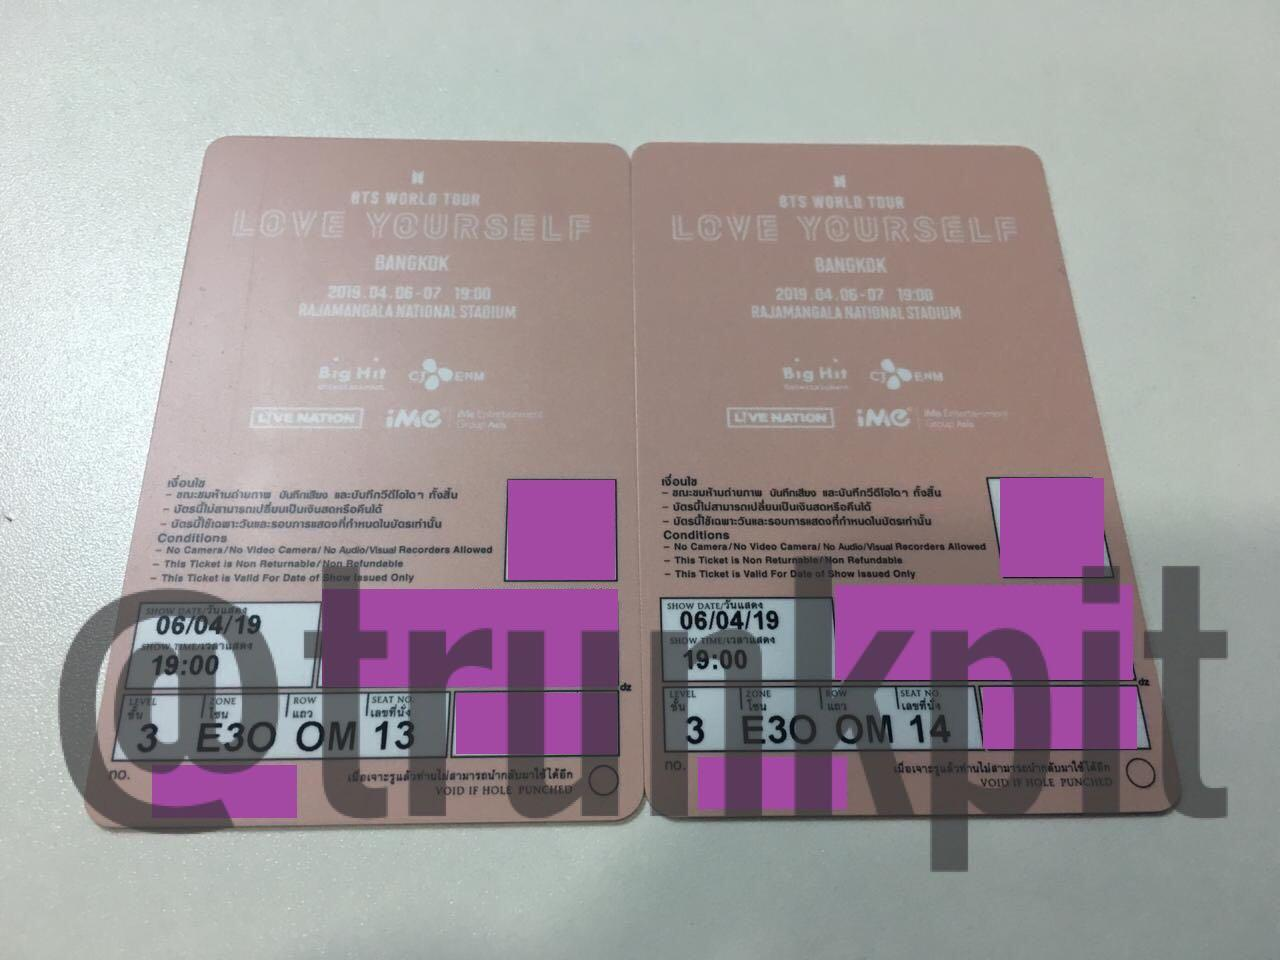 Tiket Konser Bts Love Yourself Bangkok 2 Seat Yellow Zone